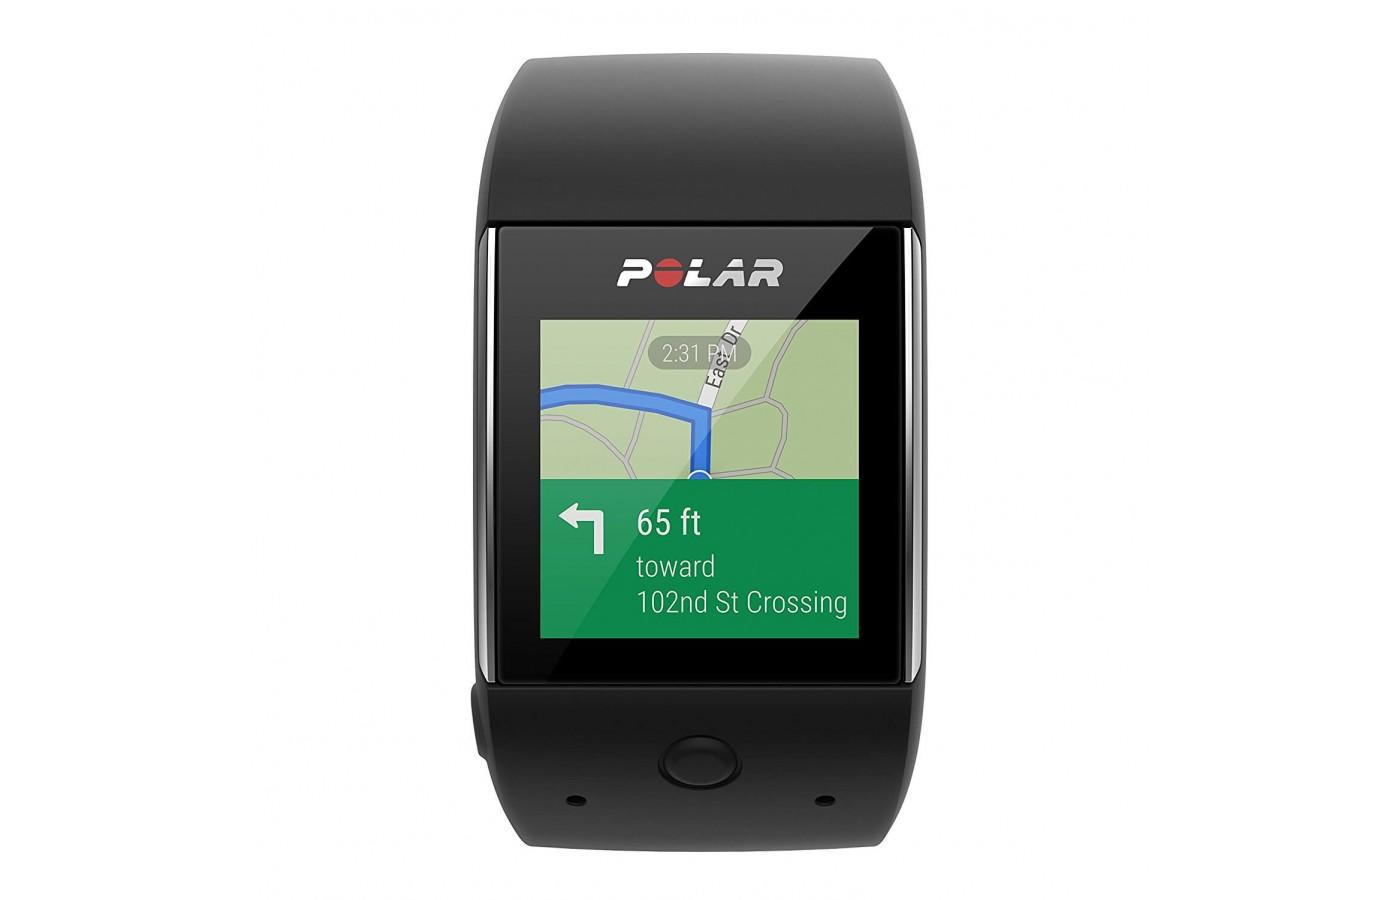 the Polar M600 has a highly accurate built-in GPS